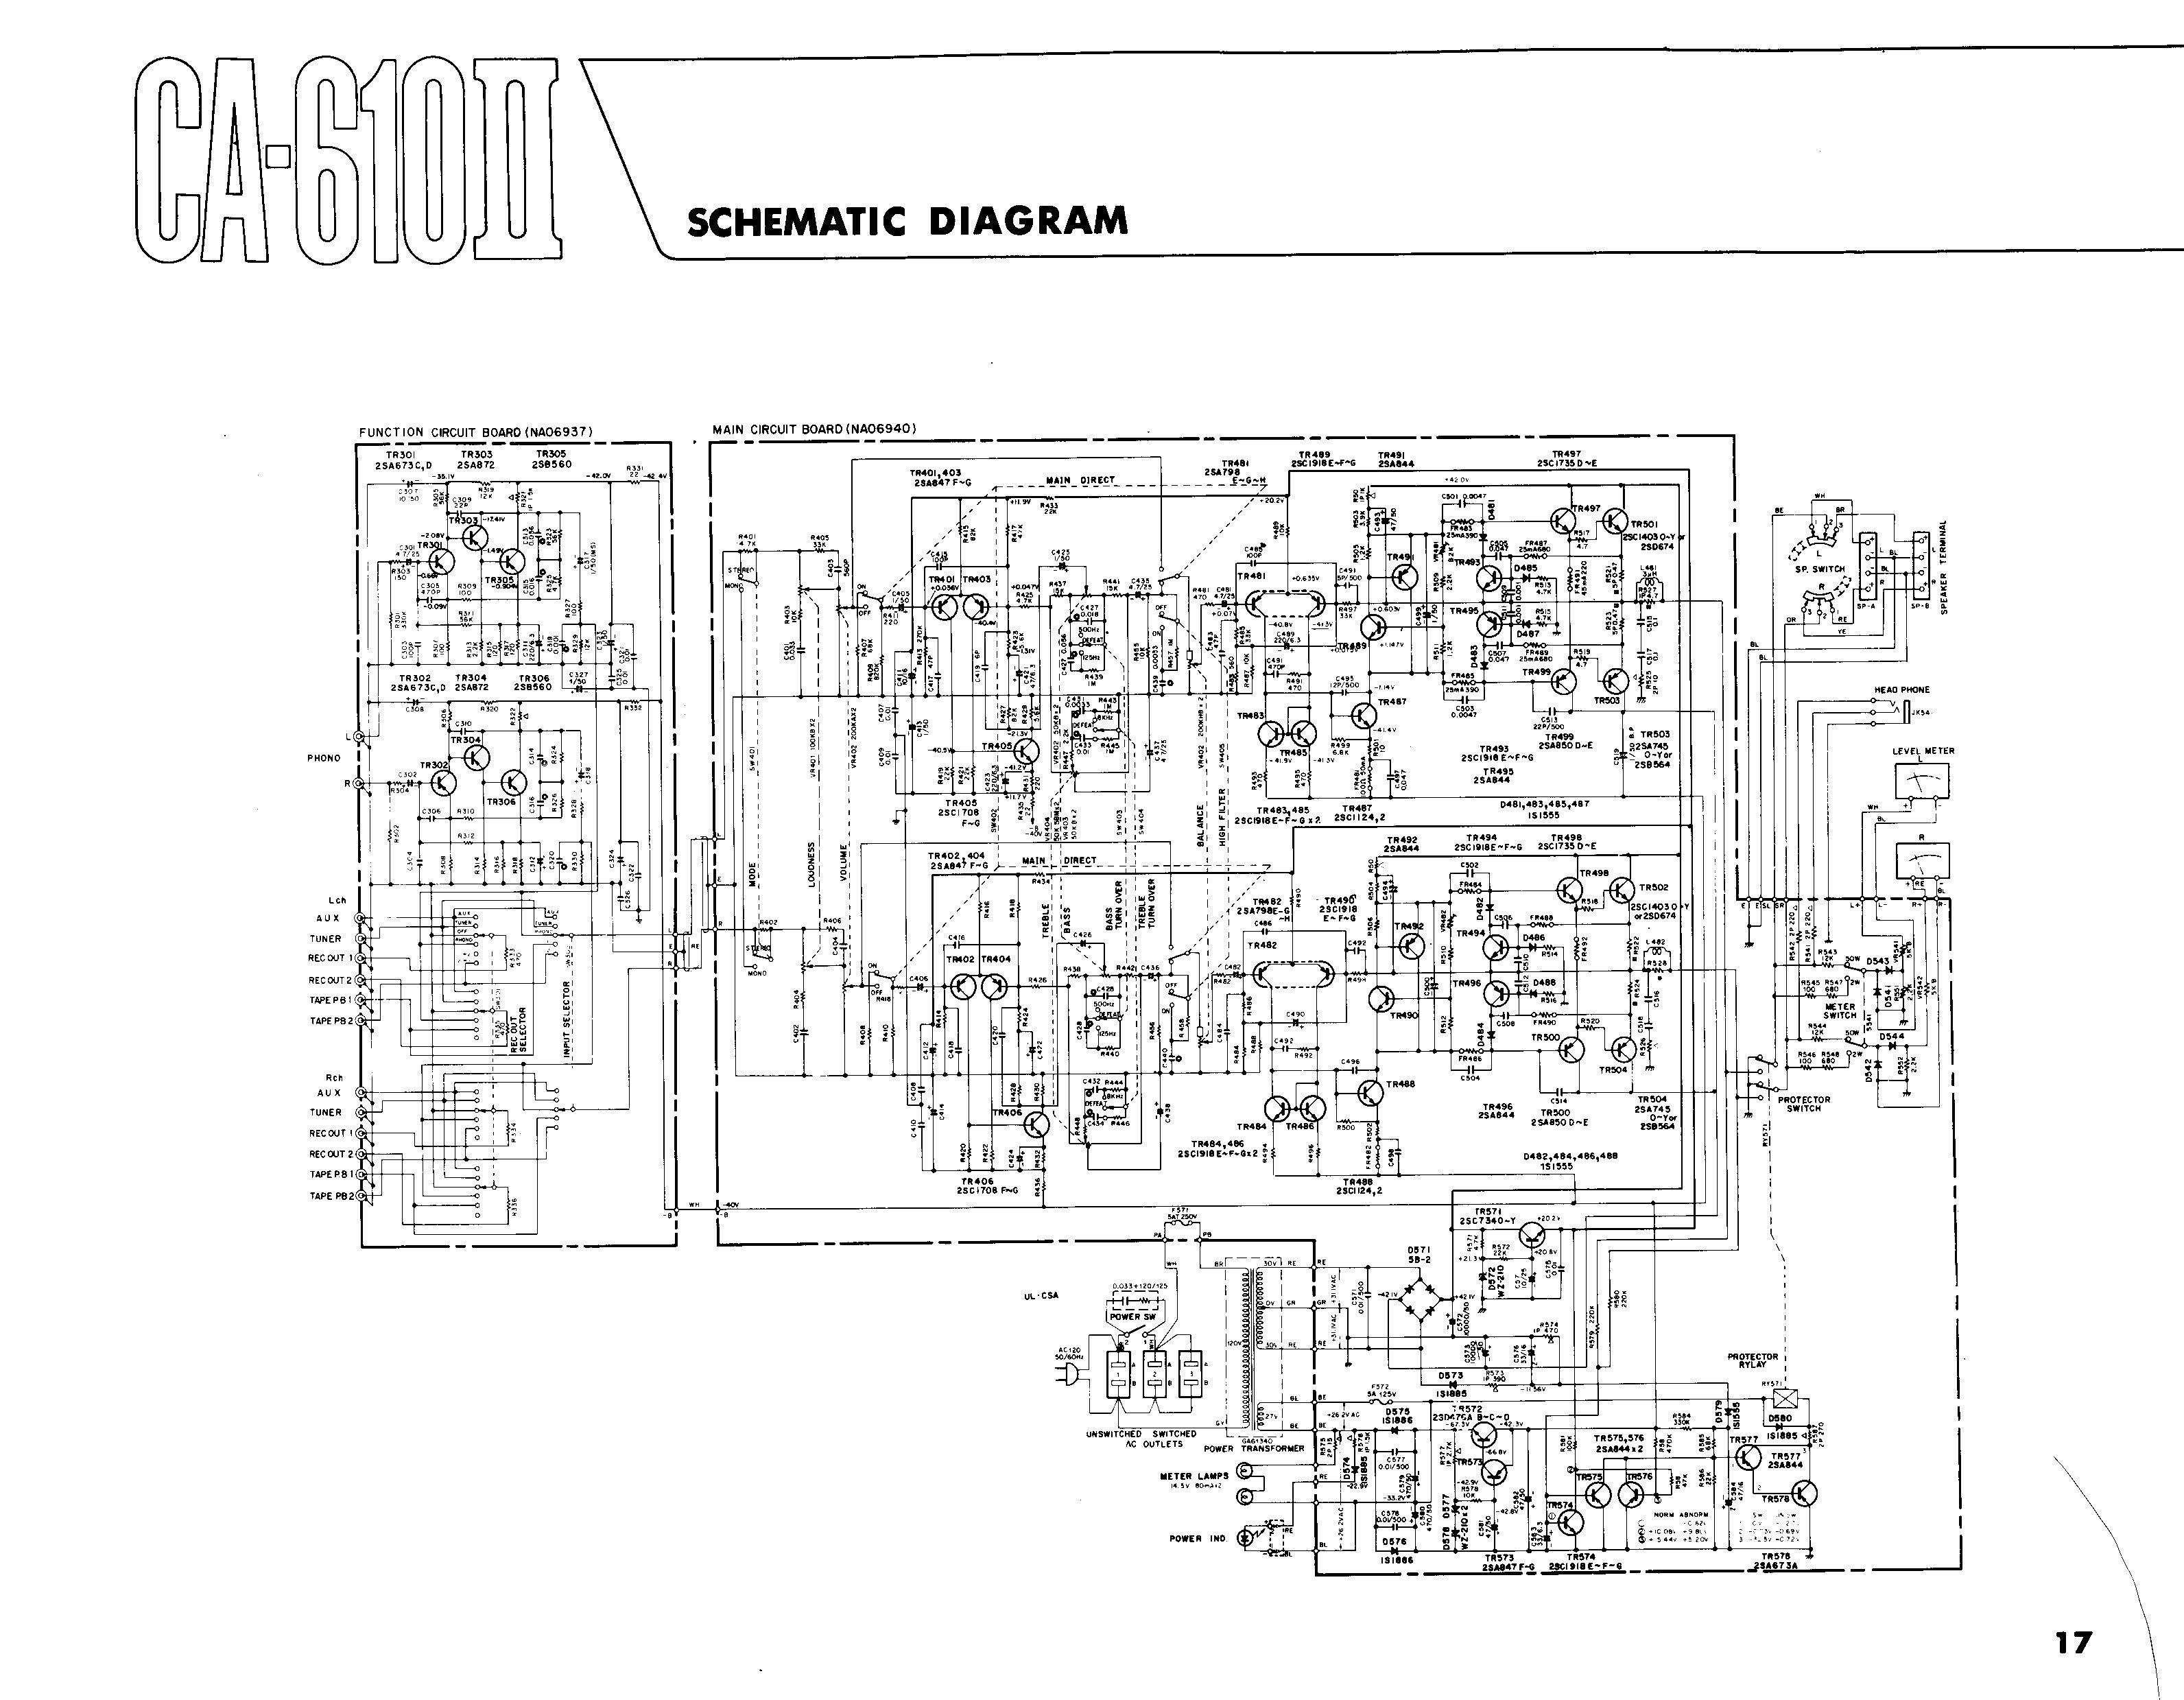 ca 6102ii s index of yamaha yamaha schematic diagram at eliteediting.co